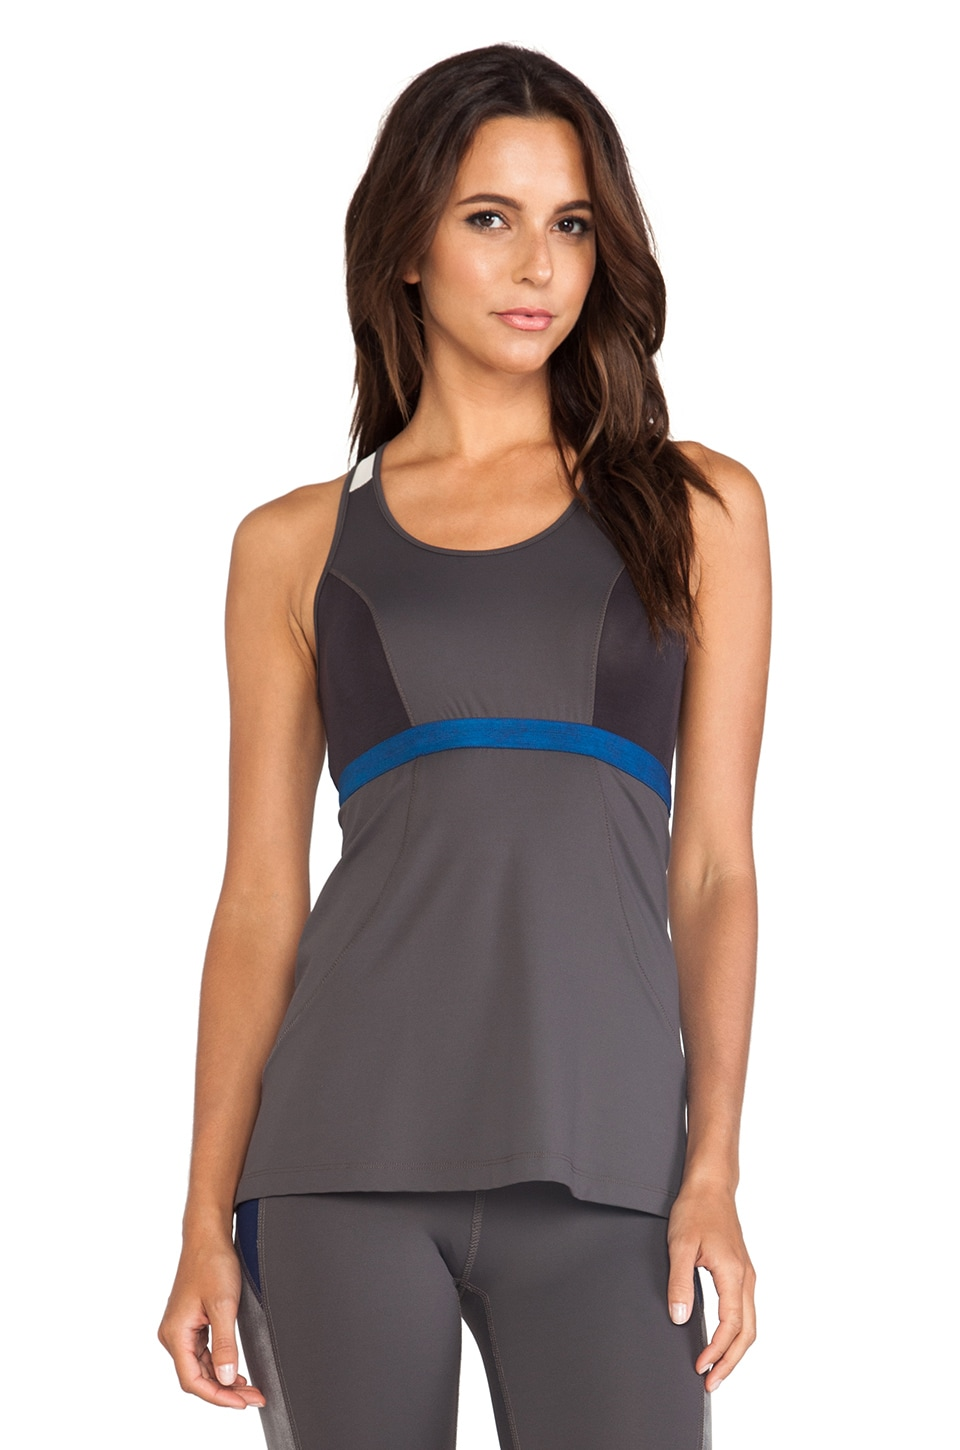 VPL Constrainer Tank in Charcoal